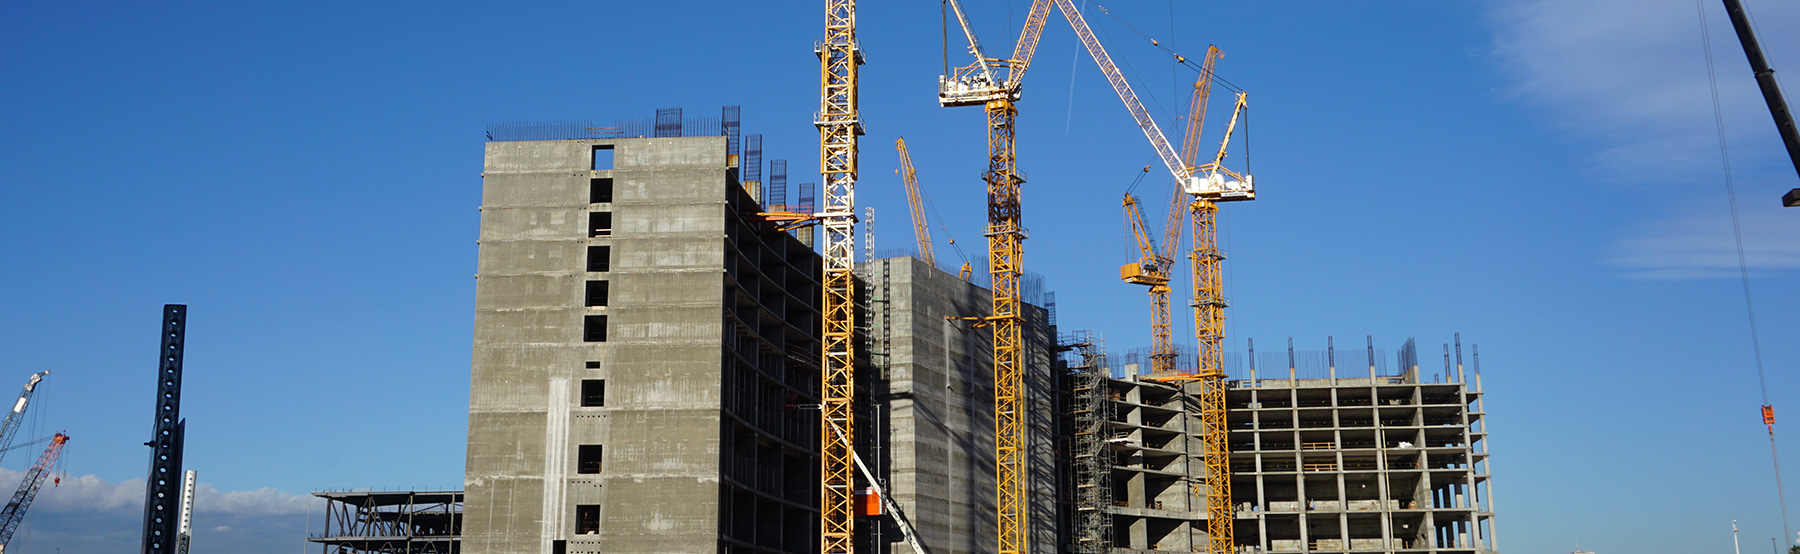 Commercial Construction with Cranes